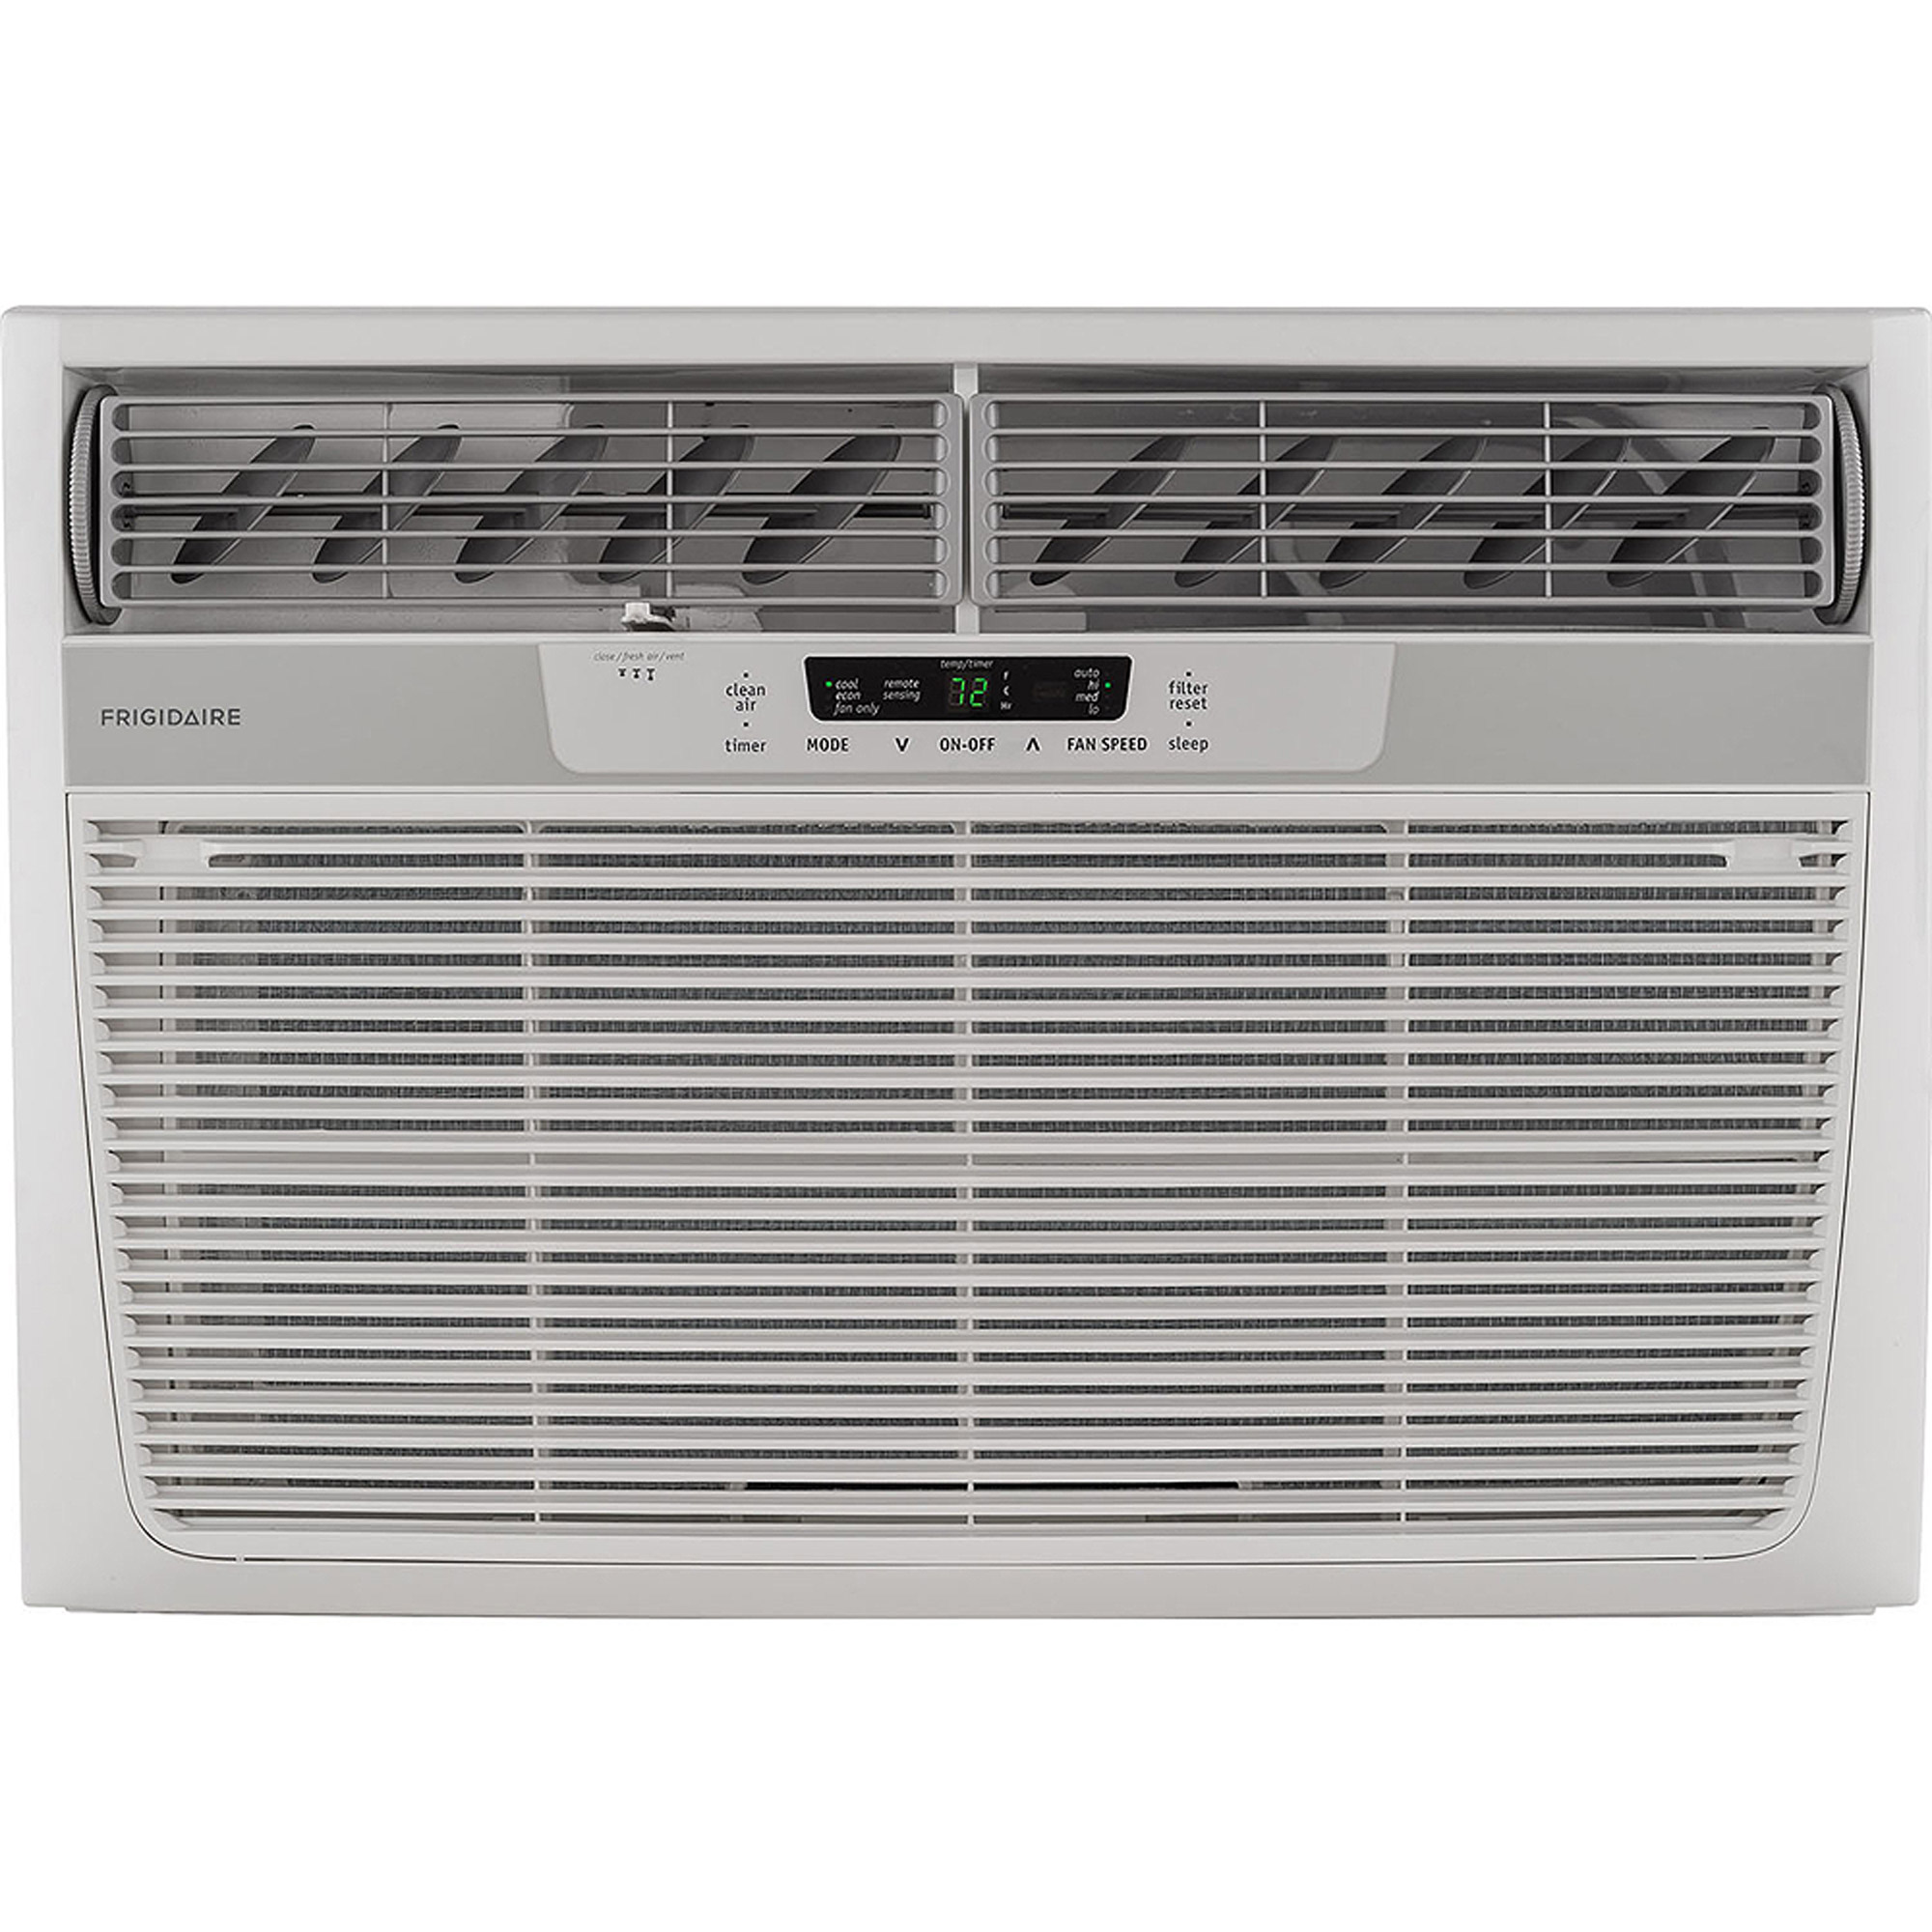 Frigidaire FFRA2822R2 28,000-BTU 230V Window Mounted Heavy-Duty Air Conditioner with Temperature-Sensing Remote Control